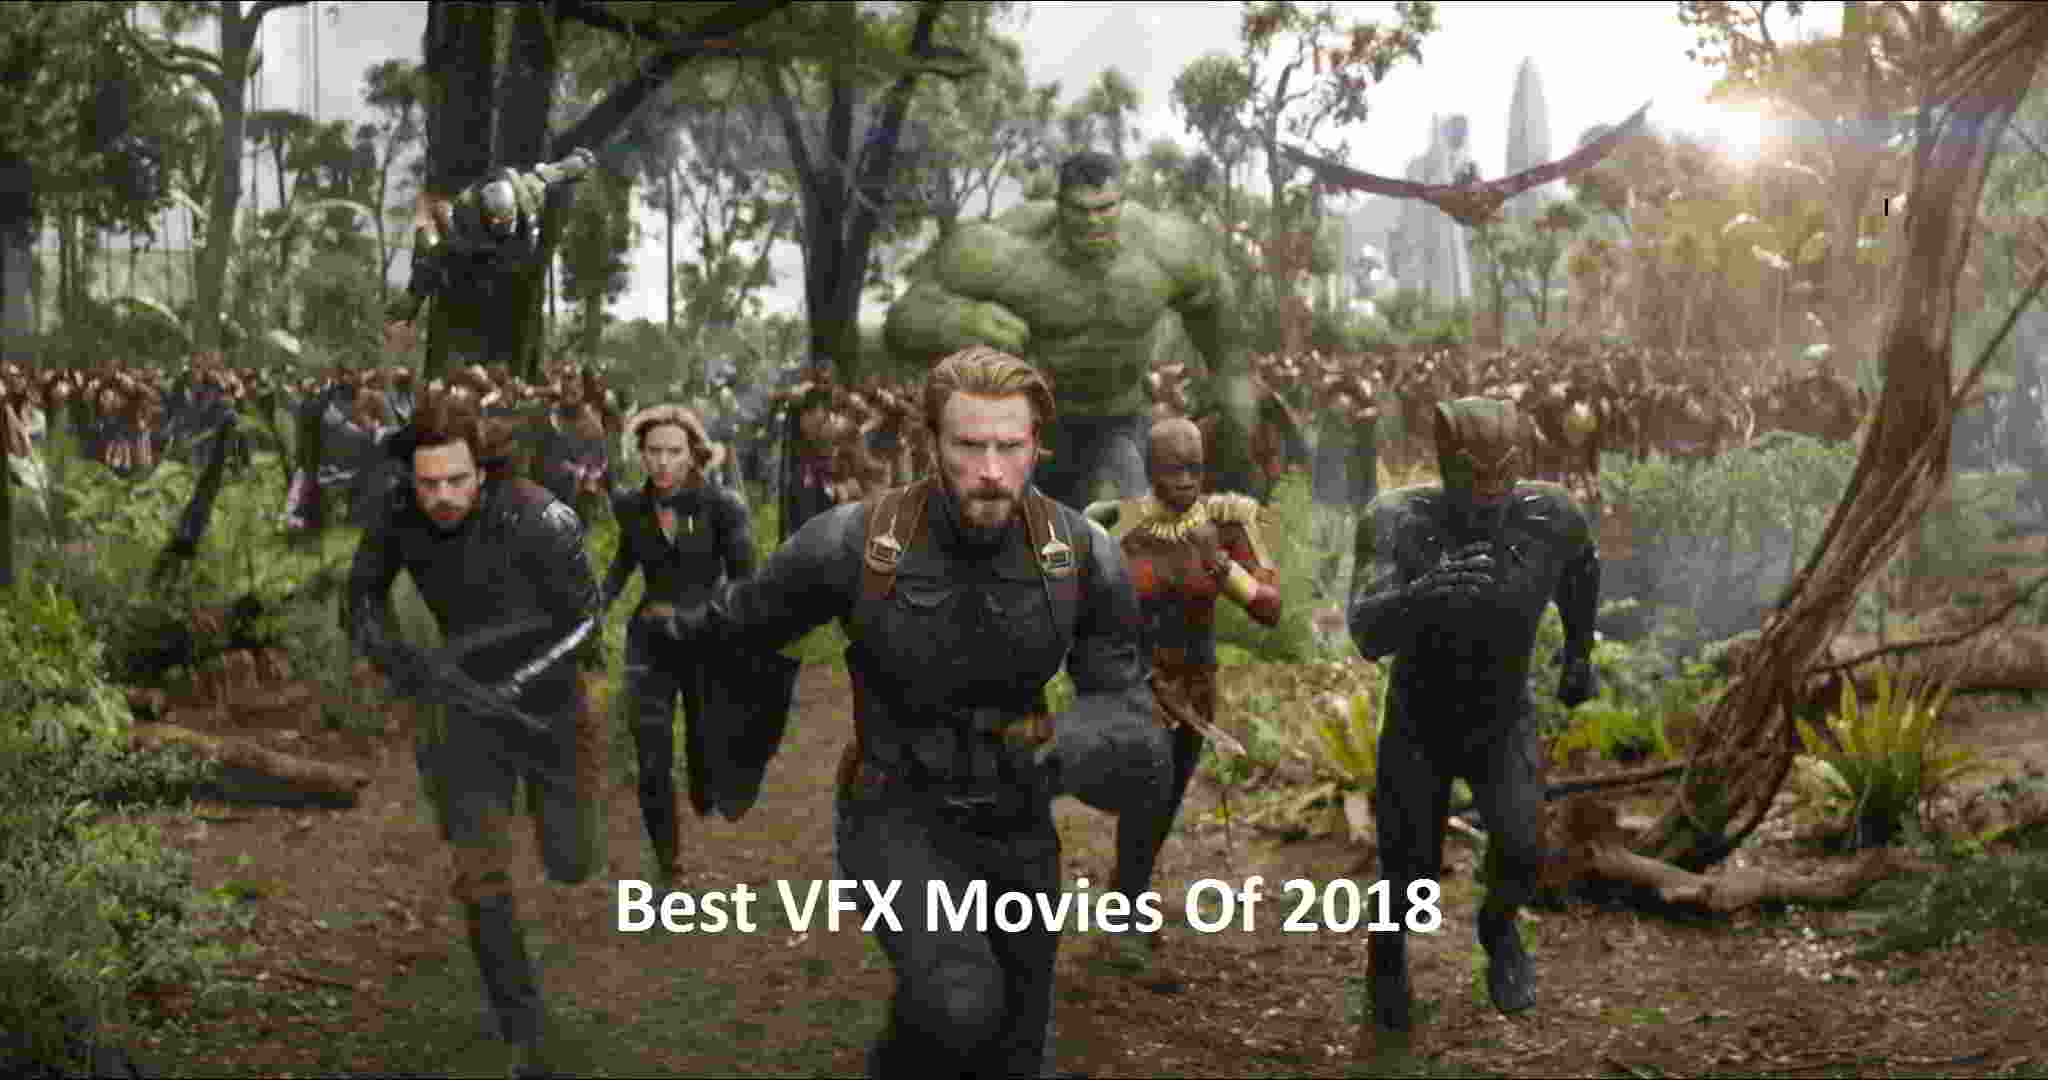 Best VFX Movies Released In 2018